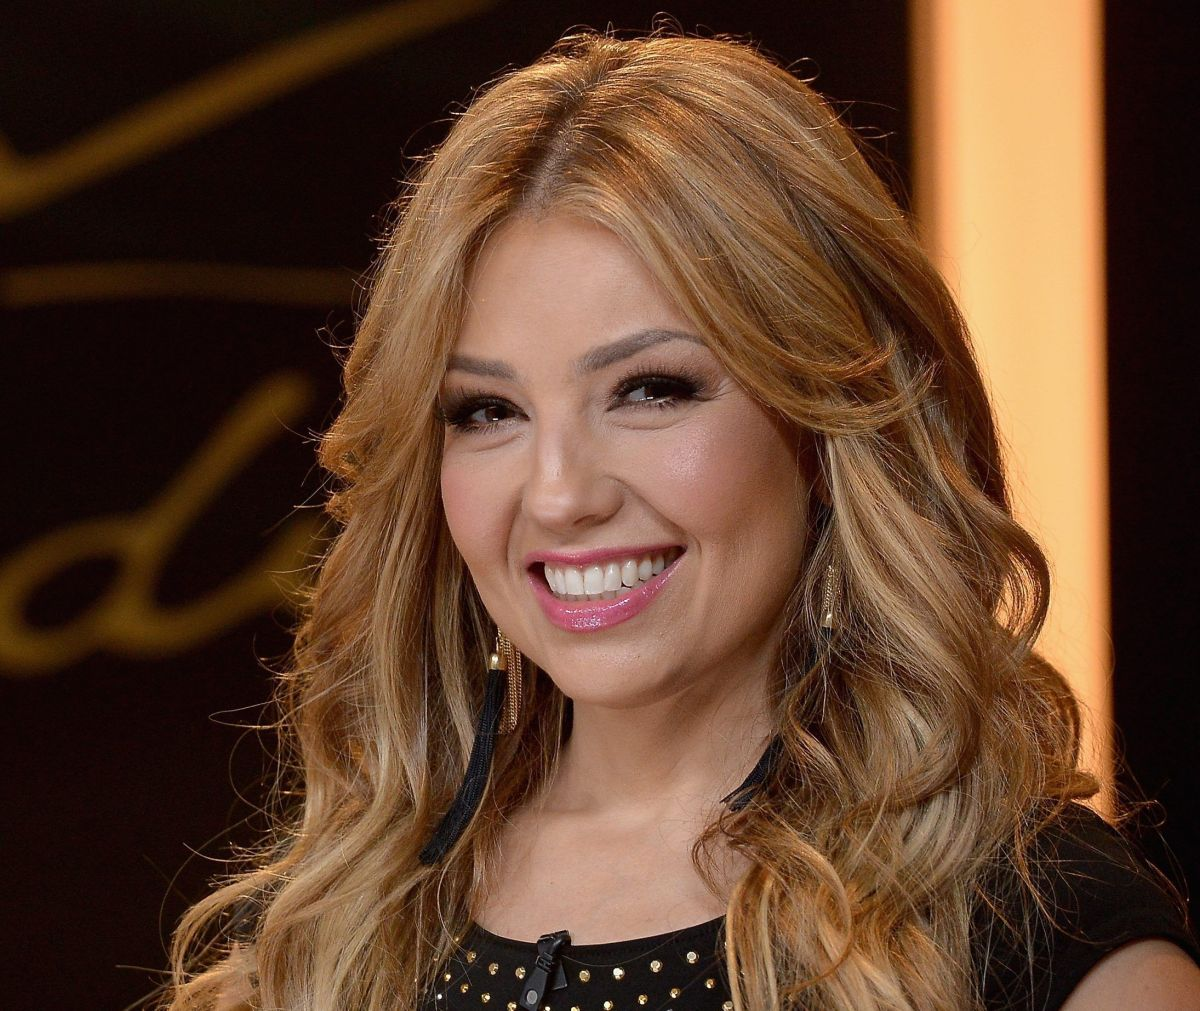 Thalía confessed that she was a lonely girl who blamed herself for her father's death | The State